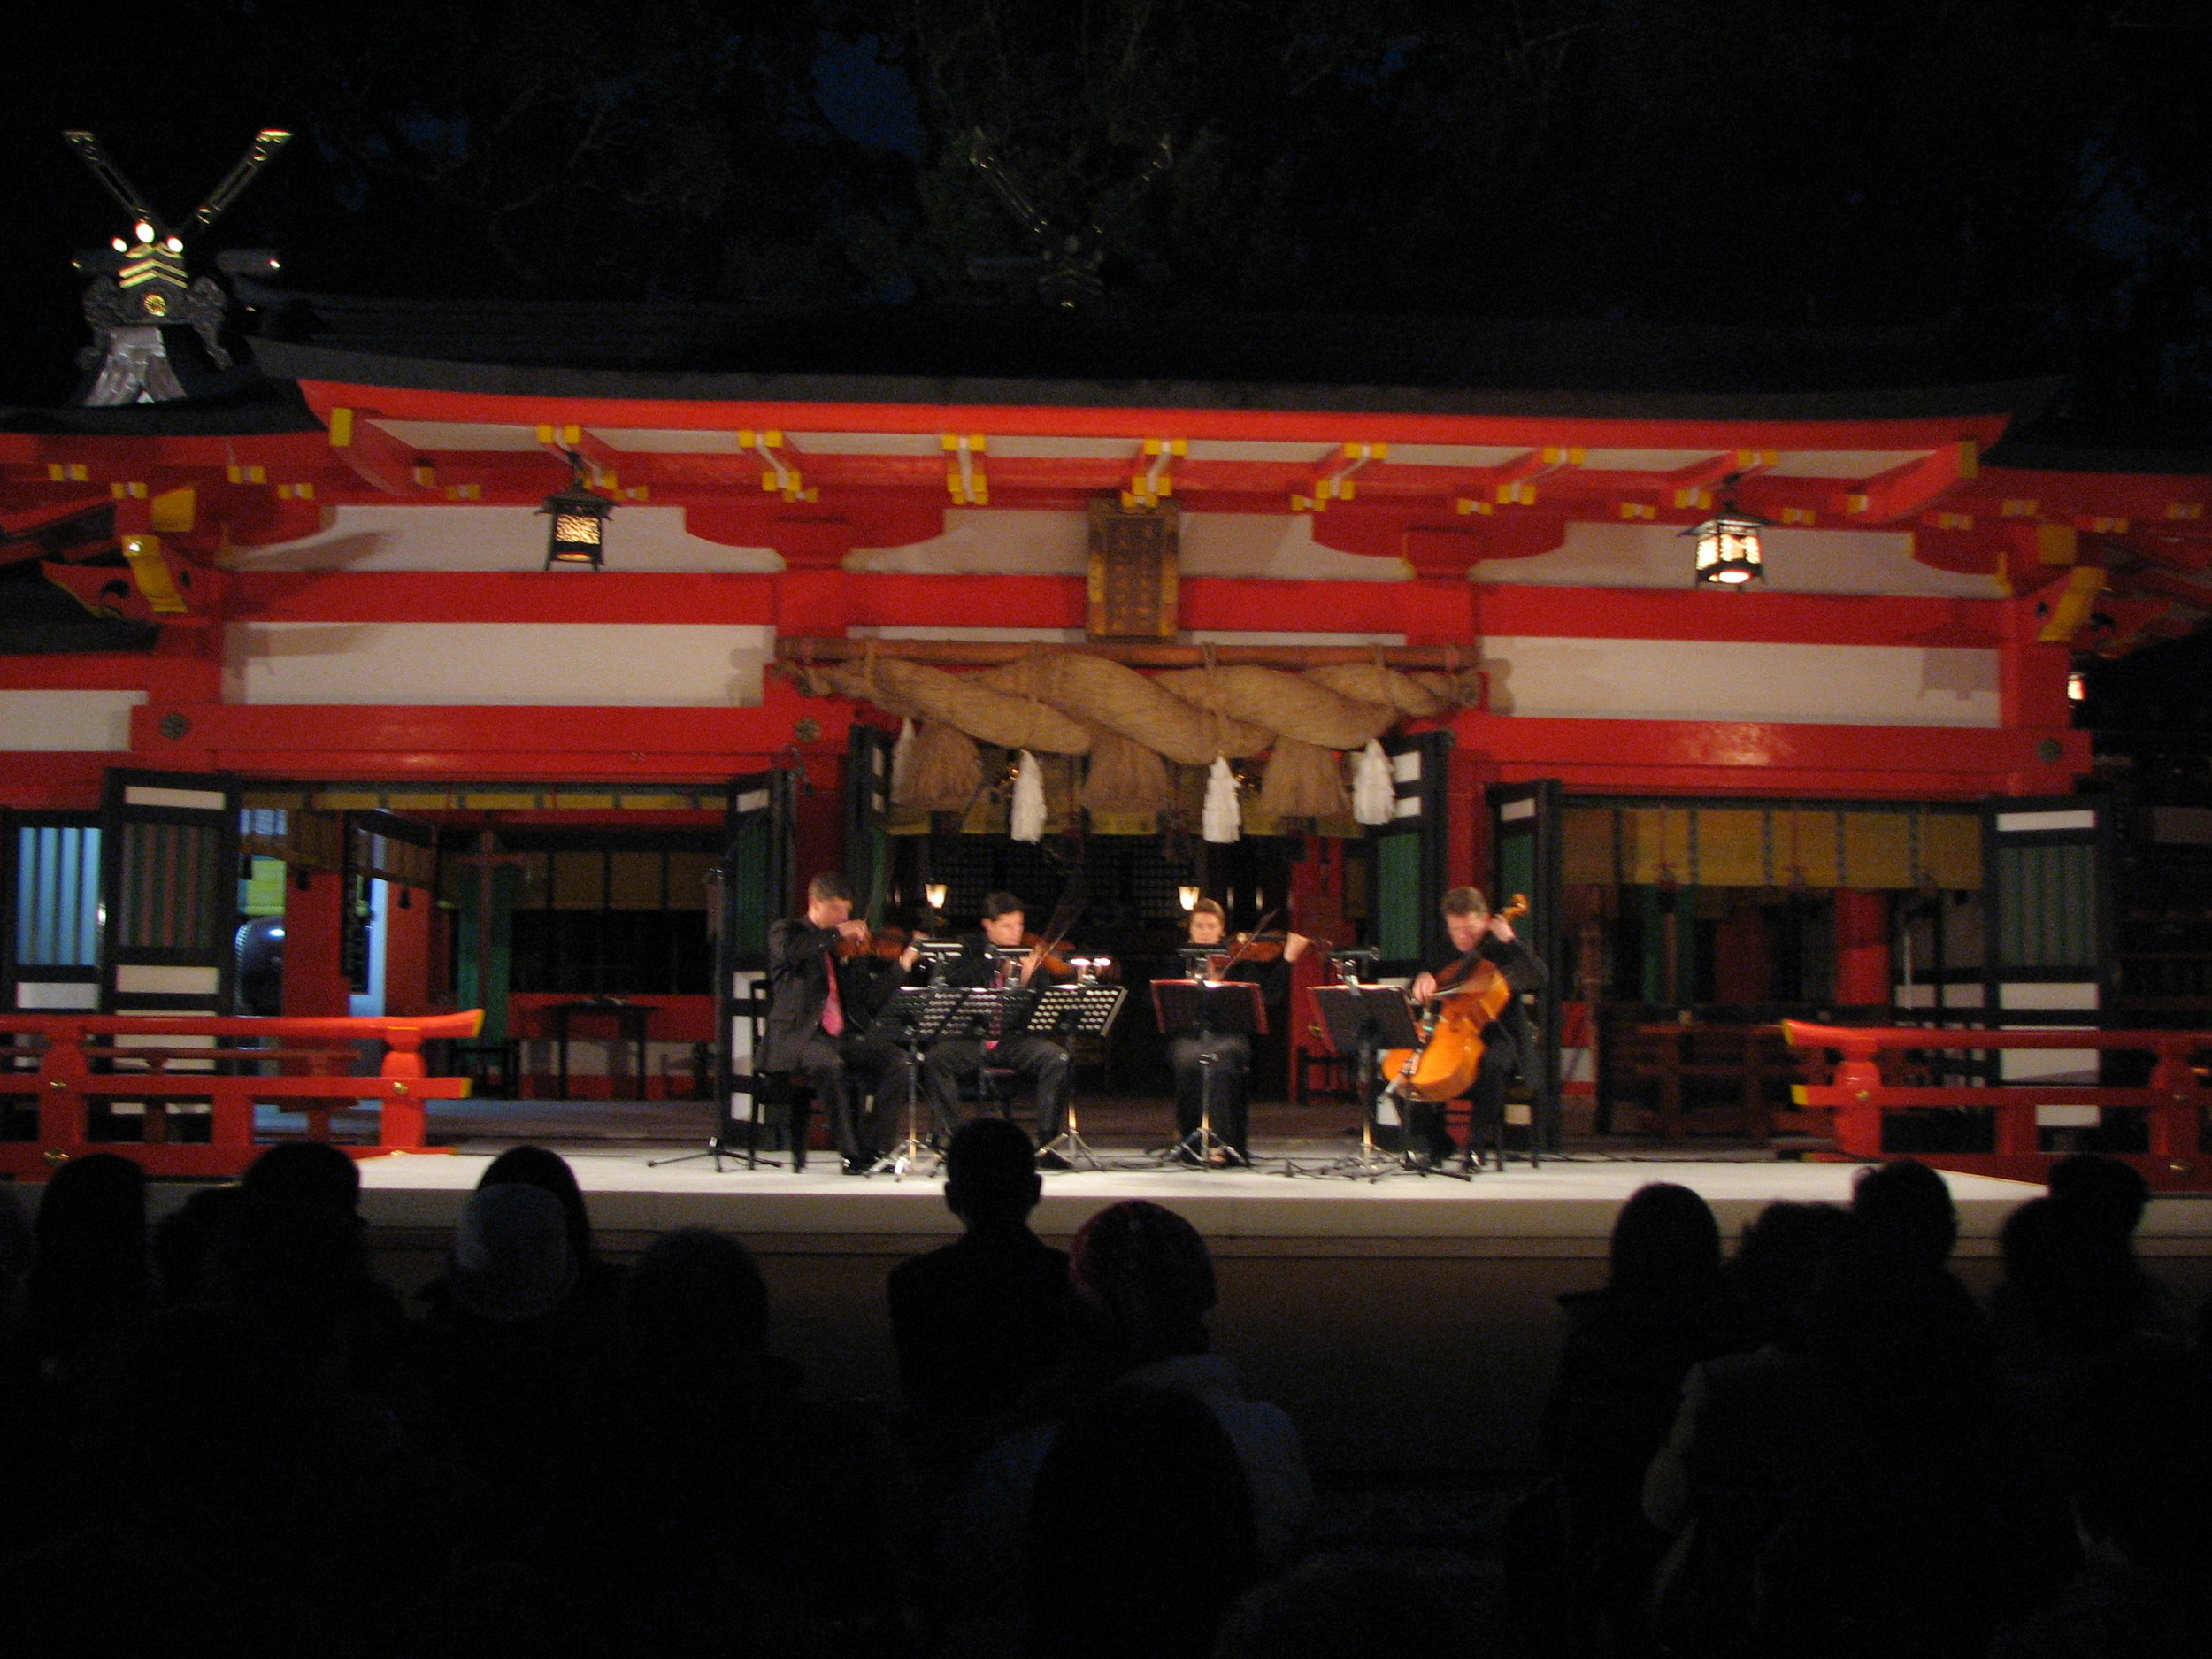 UNESCO world heritage celebration at the Hayatama shrine in Japan